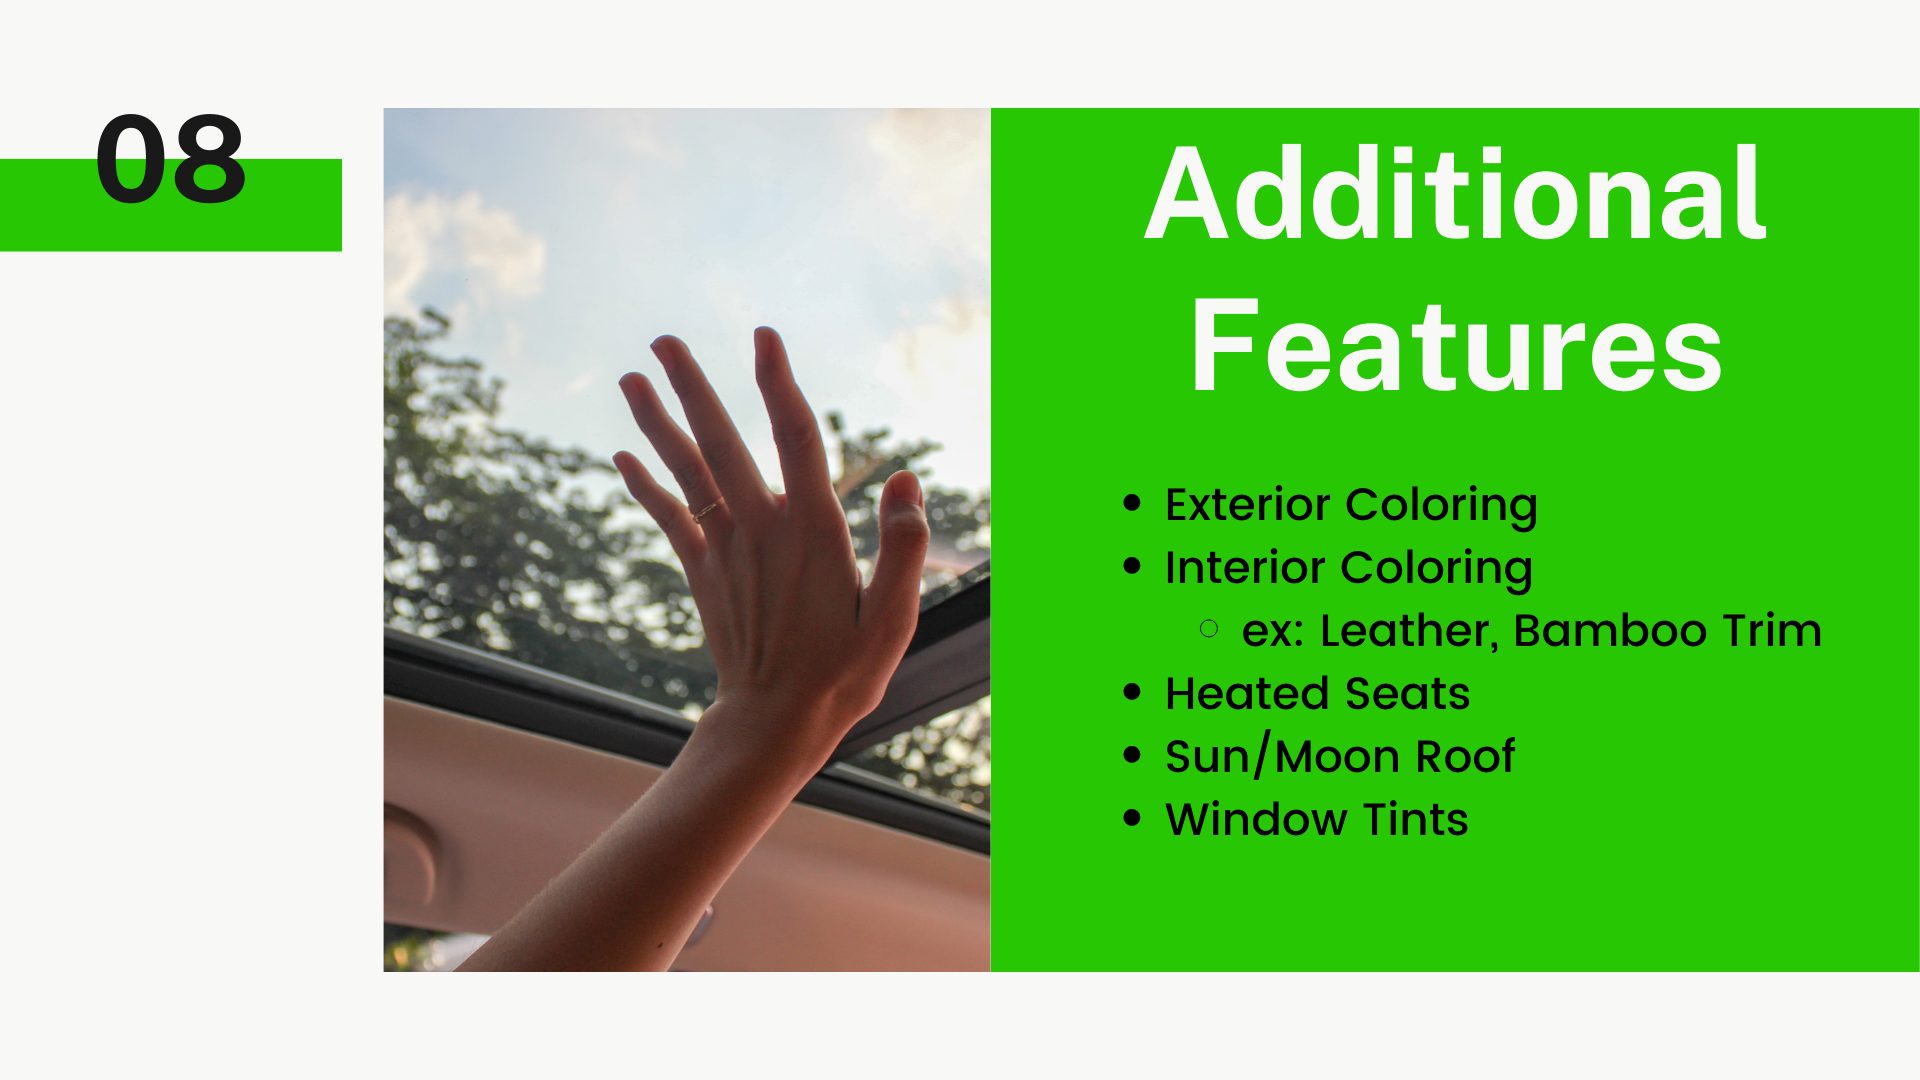 Exterior Coloring. Interior Coloring (examples: Leather, Bamboo Trim). Heated Seats. Sun/Moon Roof. Window Tints.